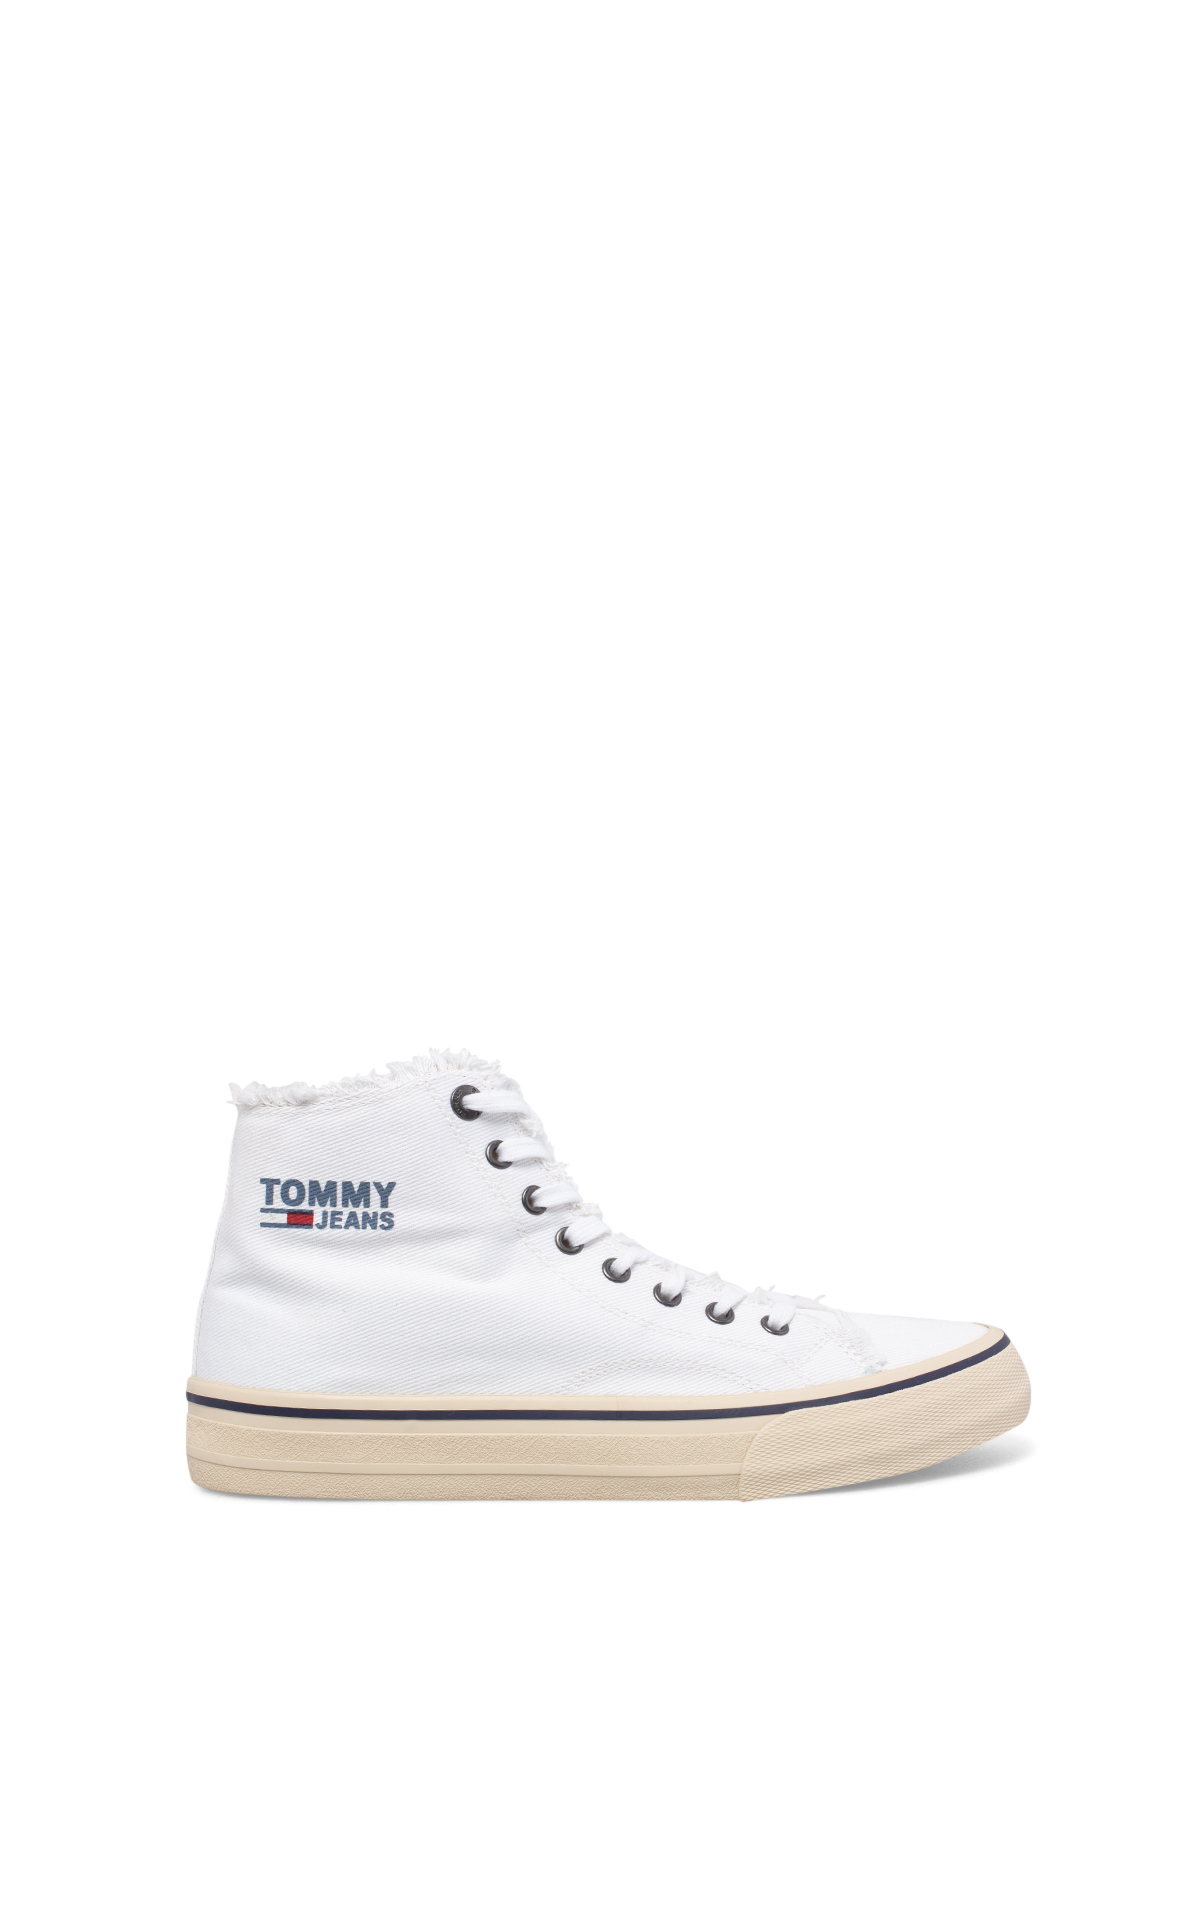 Tommy Hilfiger Men's white shoes